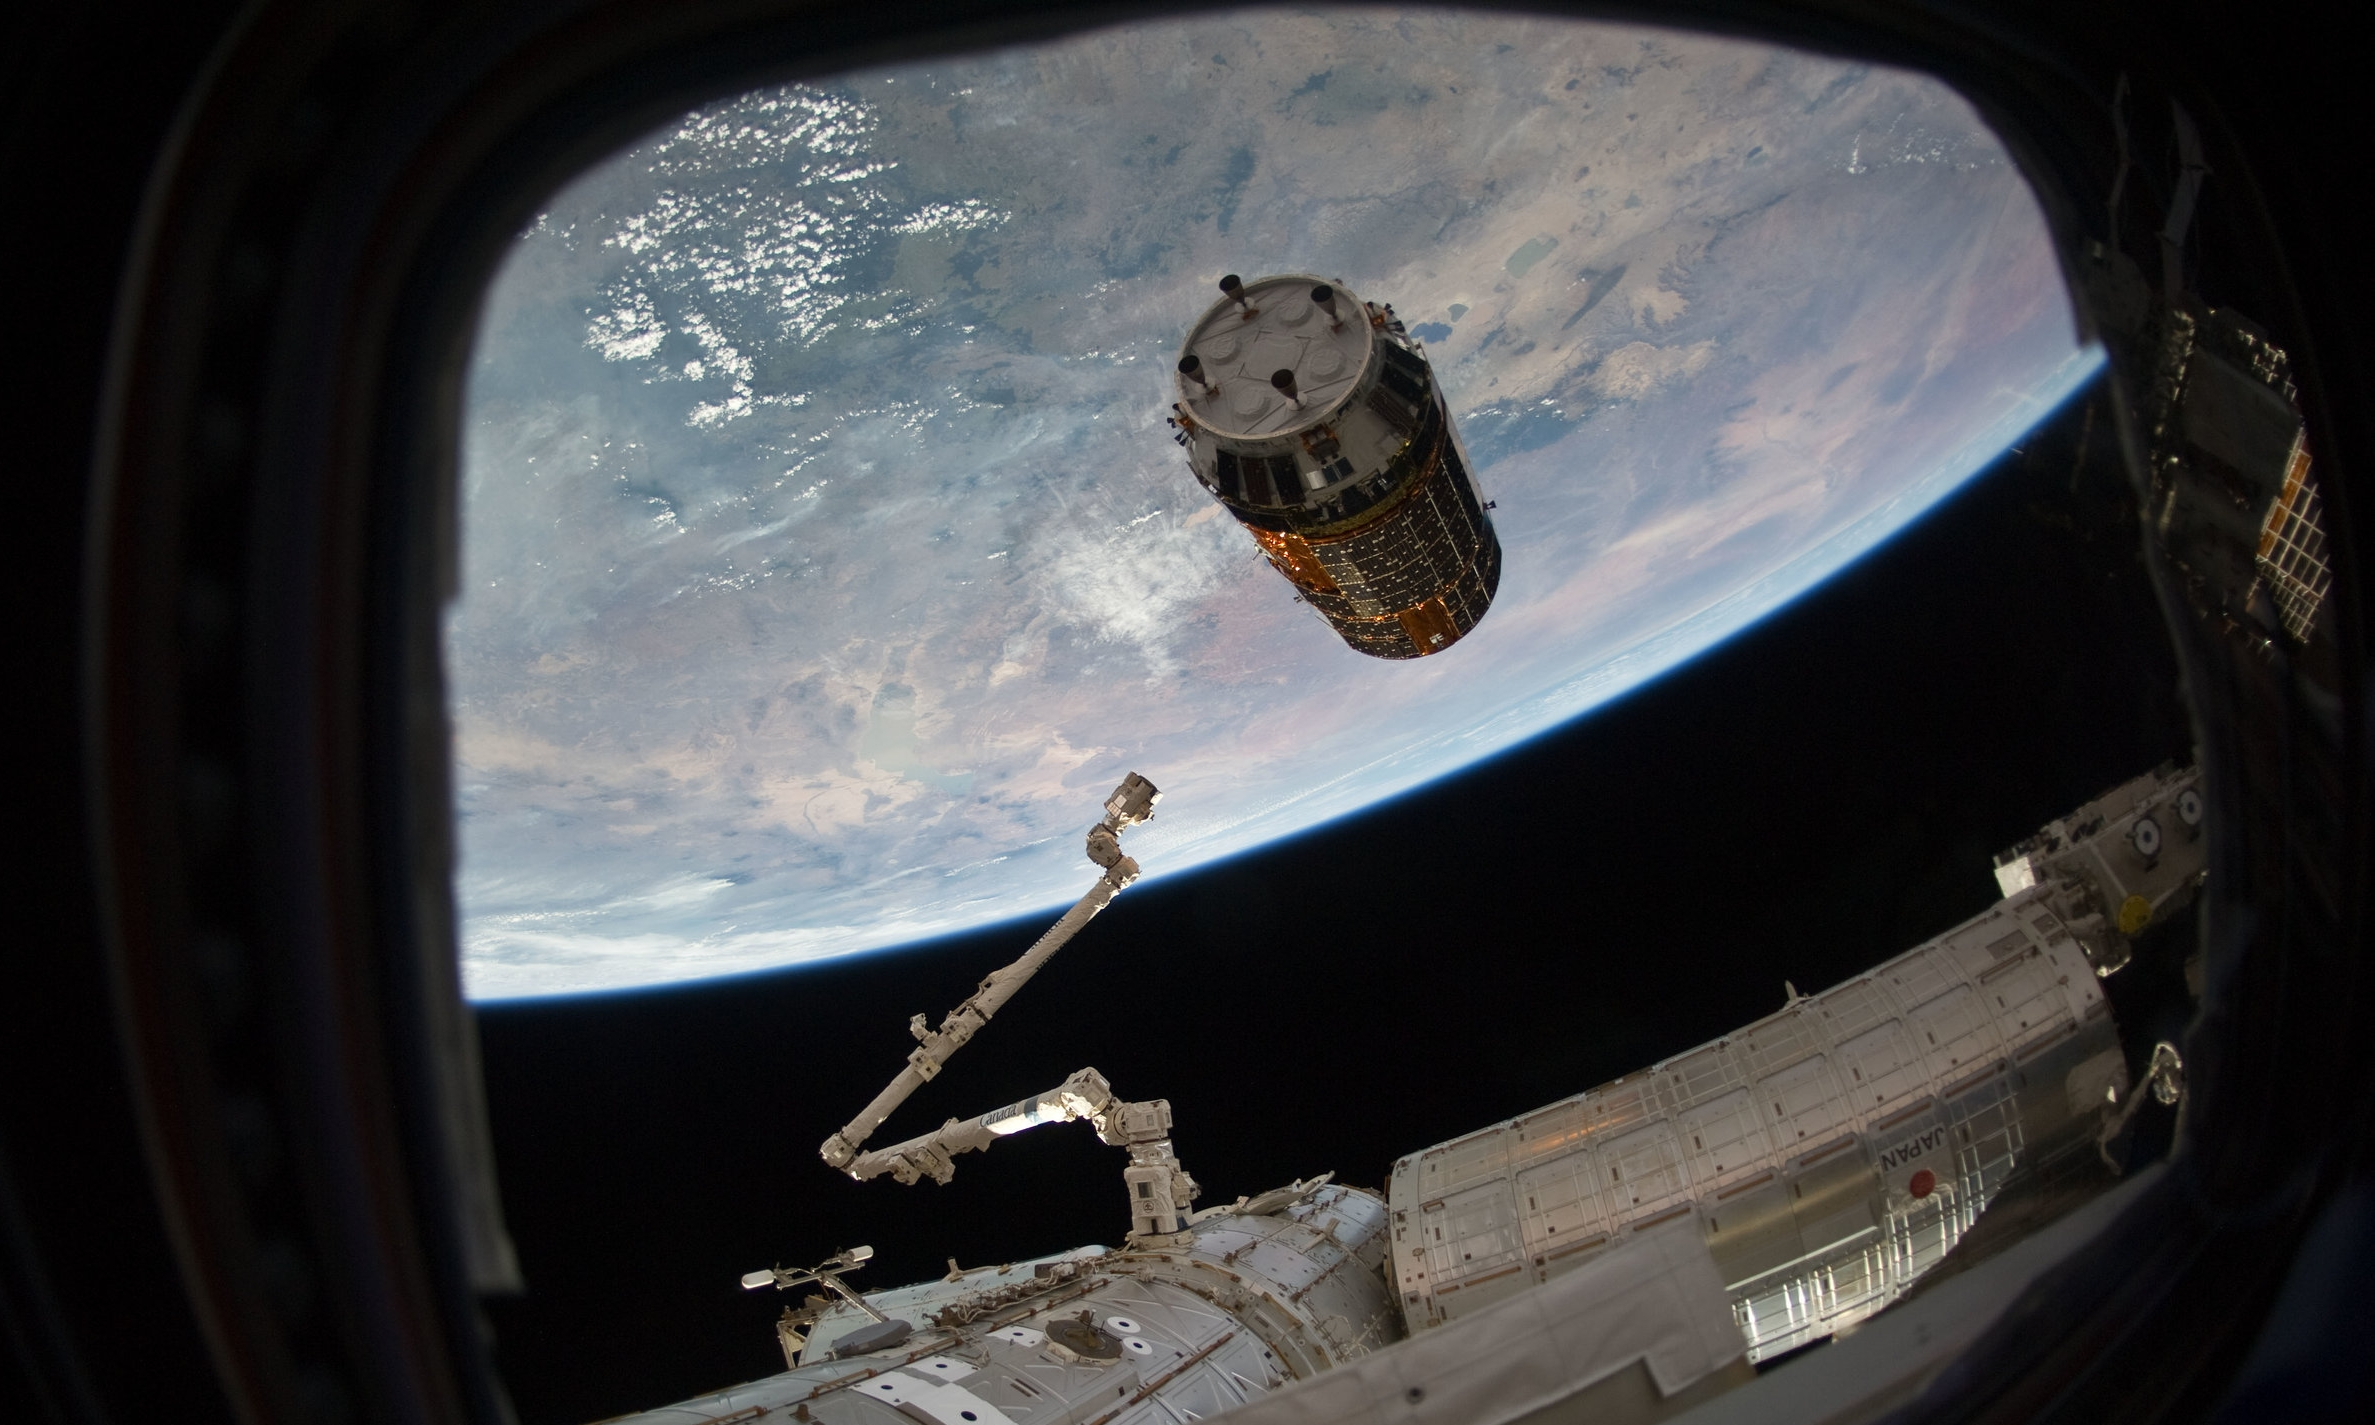 A Kounotori spacecraft reaches the 10-meter hold point to await capture by the robotic Canadarm2. Credit: NASA